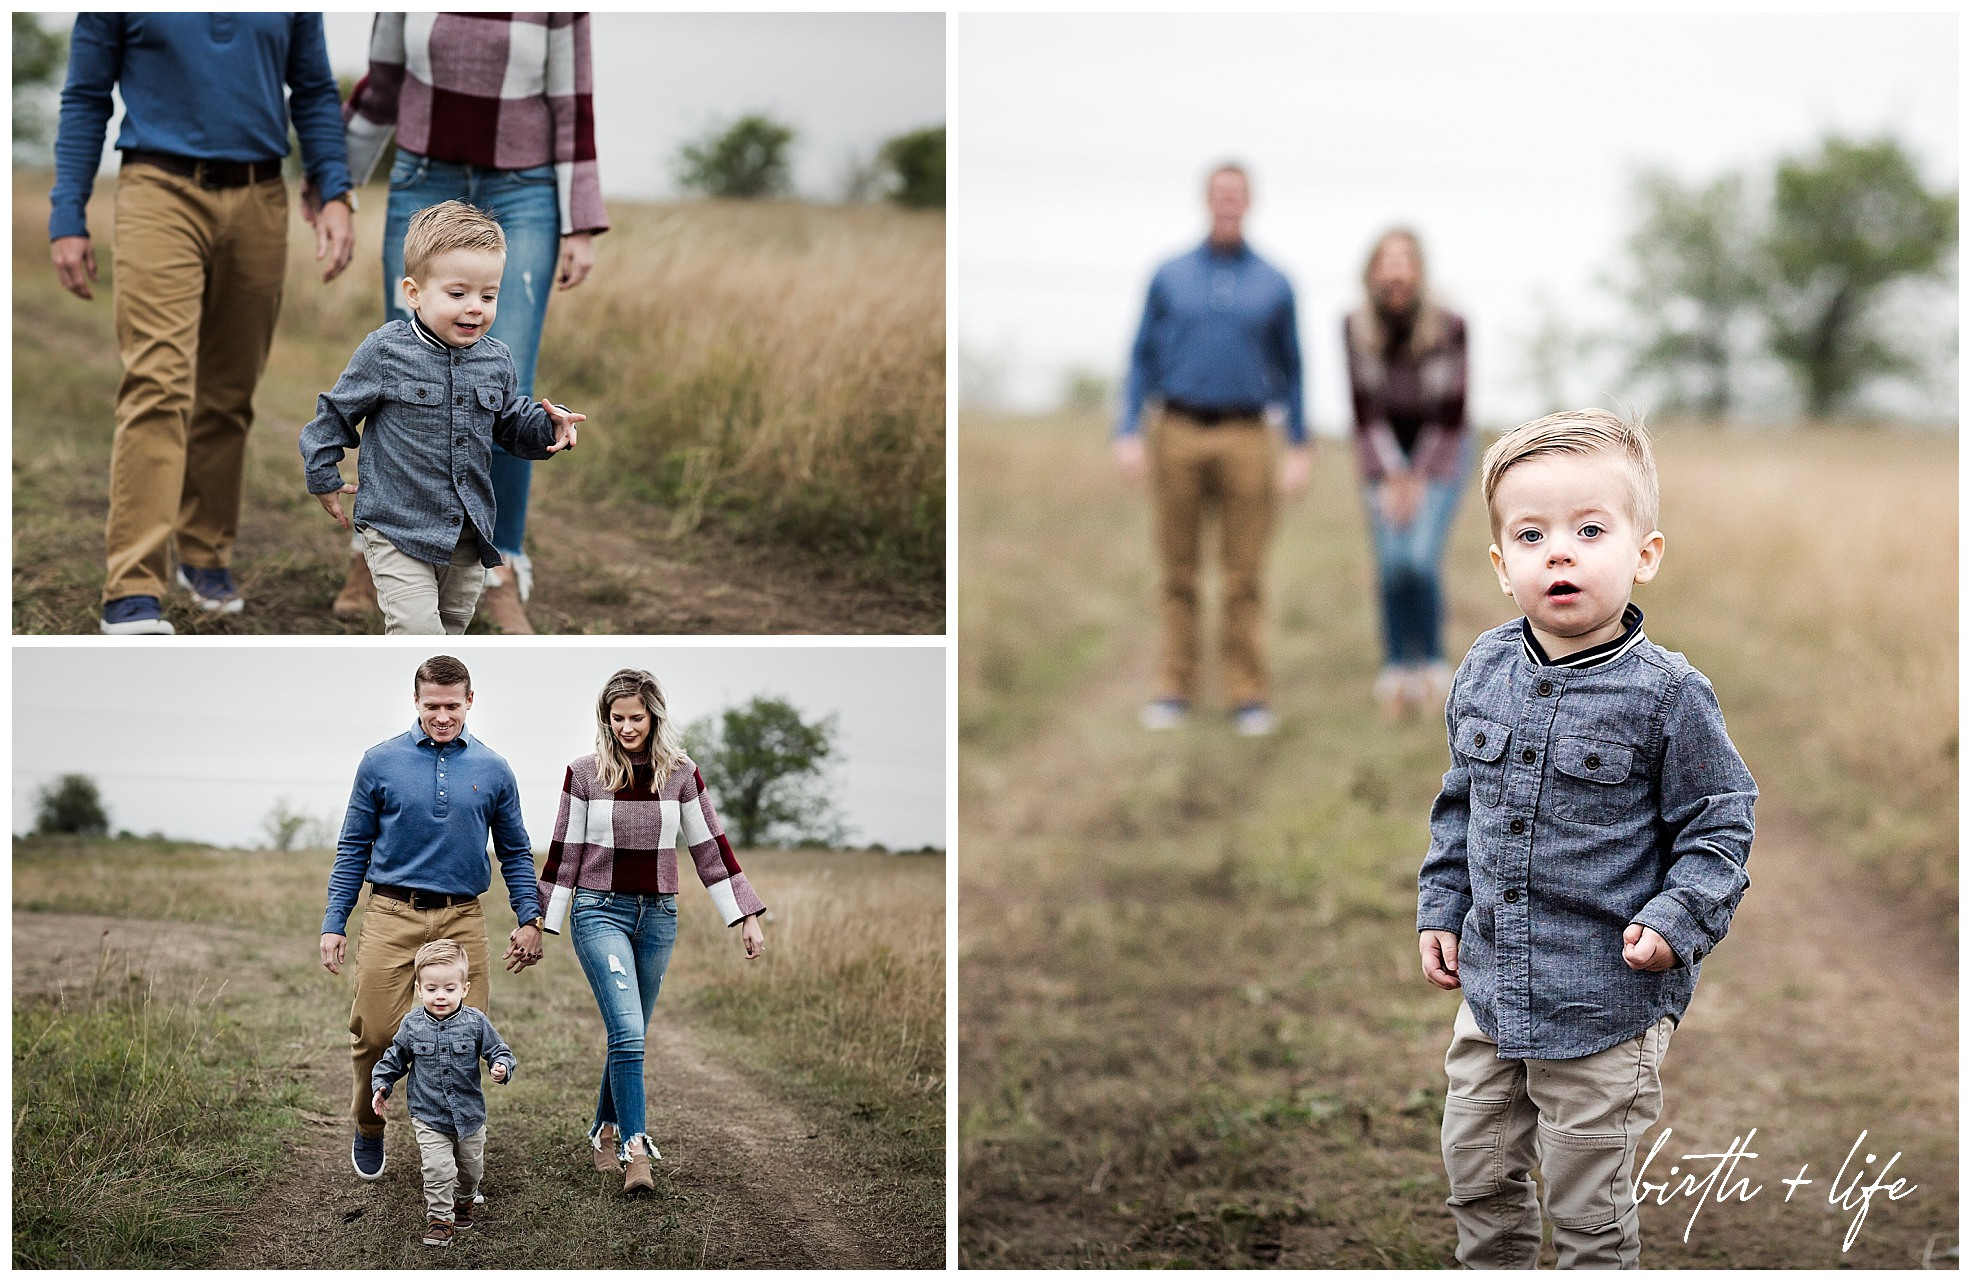 dfw-birth-and-life-photography-family-photojournalism-documentary-kids-photographer-authentic-fall-family-photos002.jpg